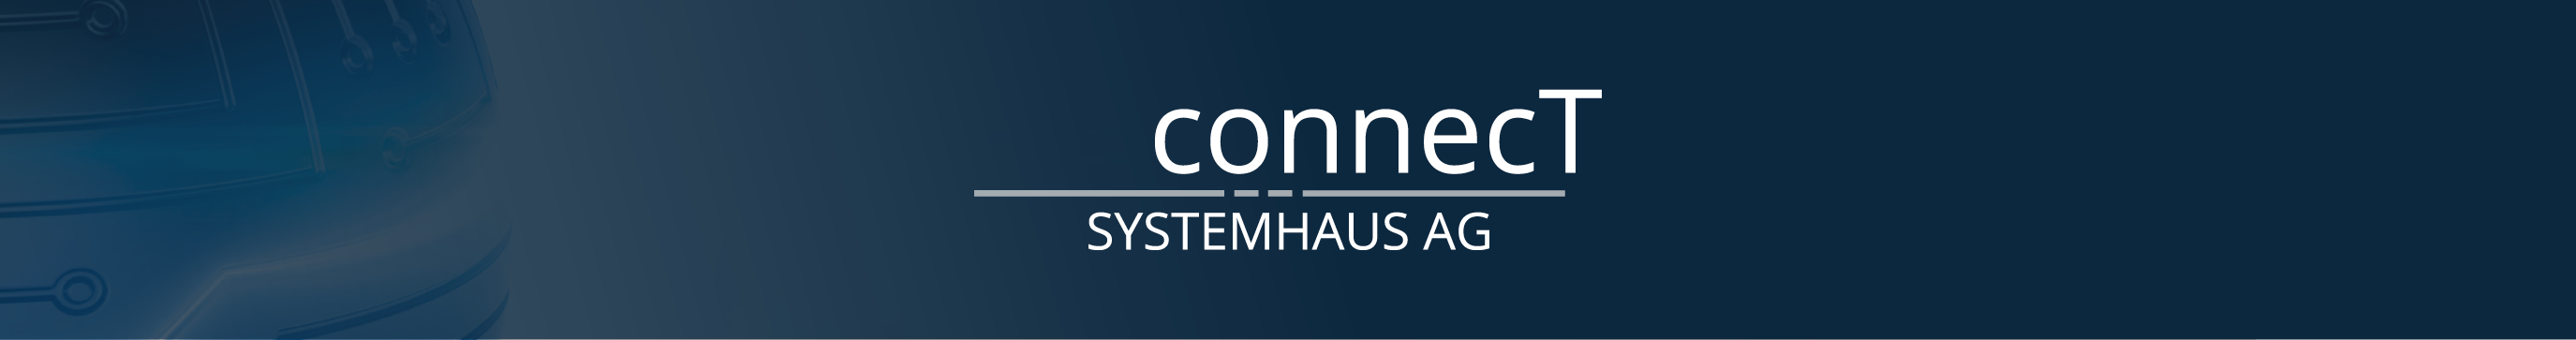 connecT SYSTEMHAUS AG